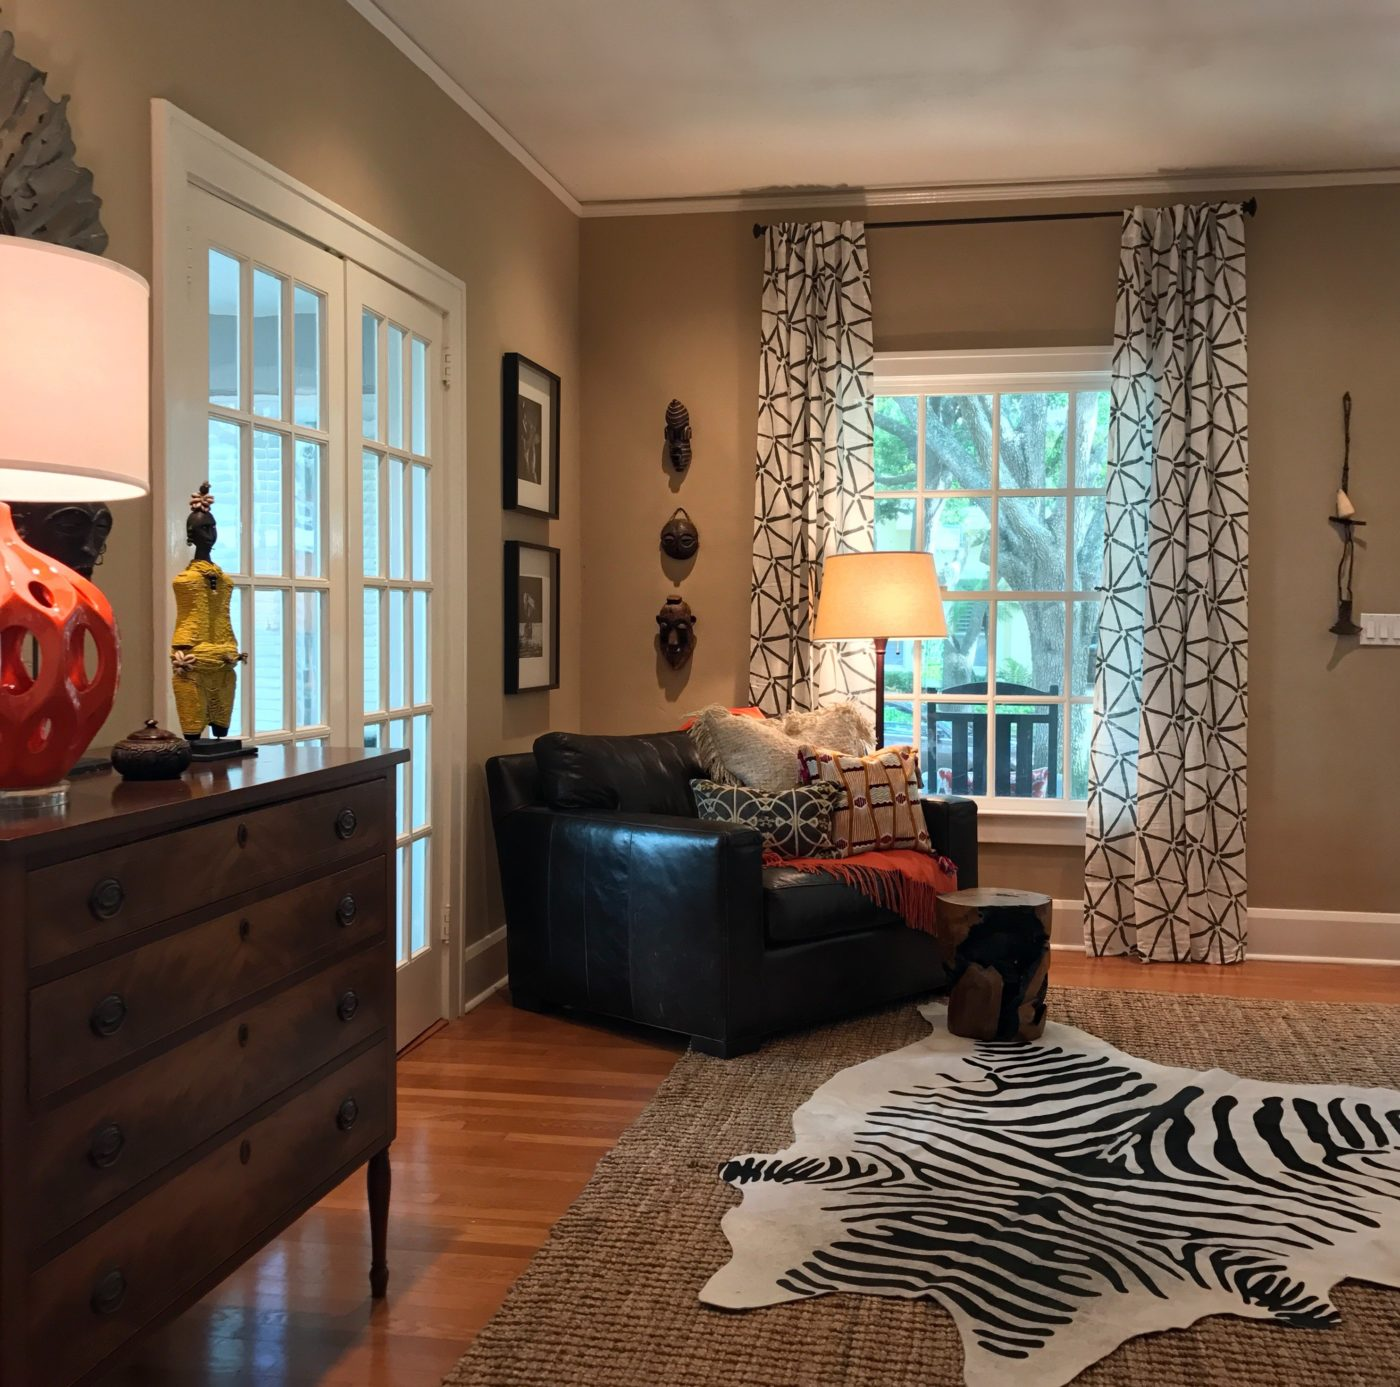 Cozy reading corner with layered rugs on the floor, ethnic patterned drapes and and the homeowners African mask collection displayed vertically on the wall.